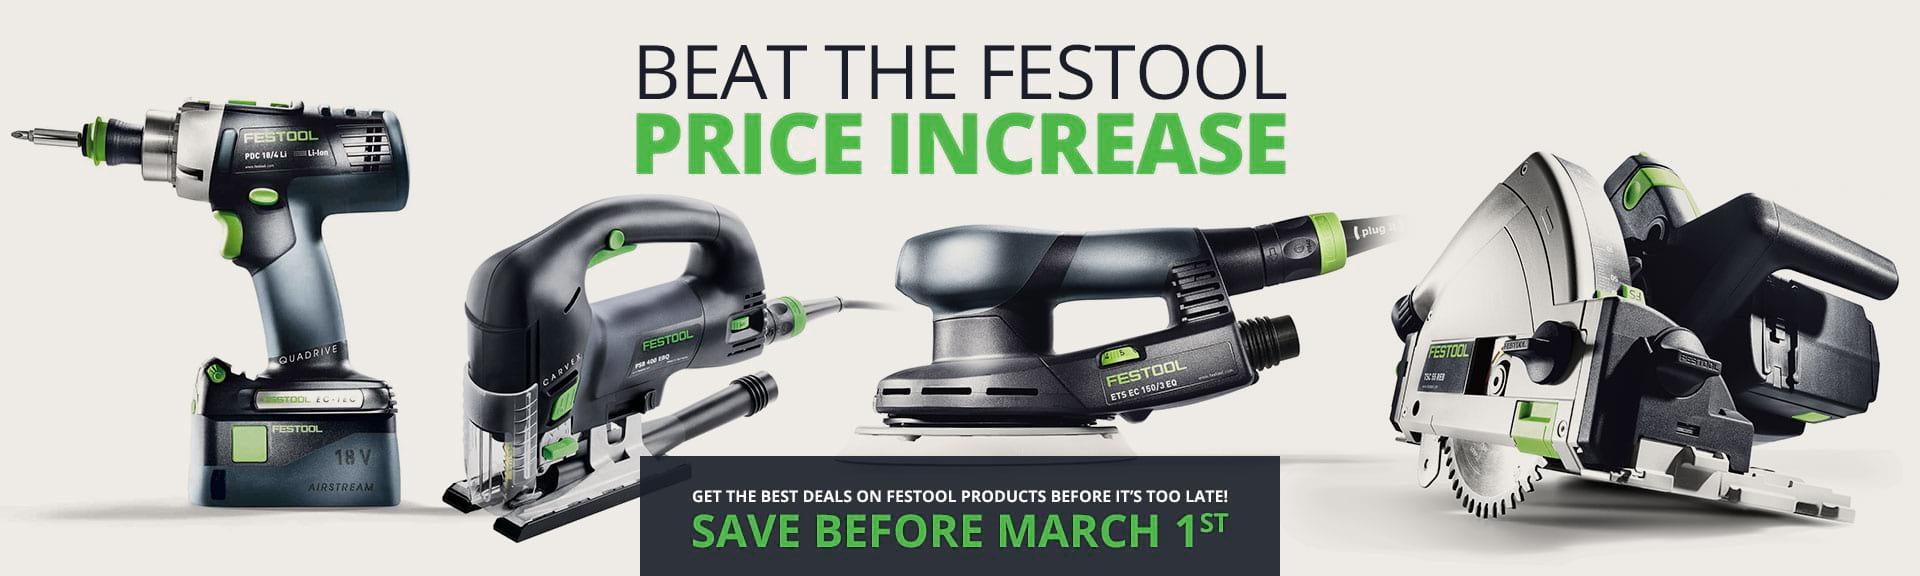 Beat the Festool Price Increase on March 1st!